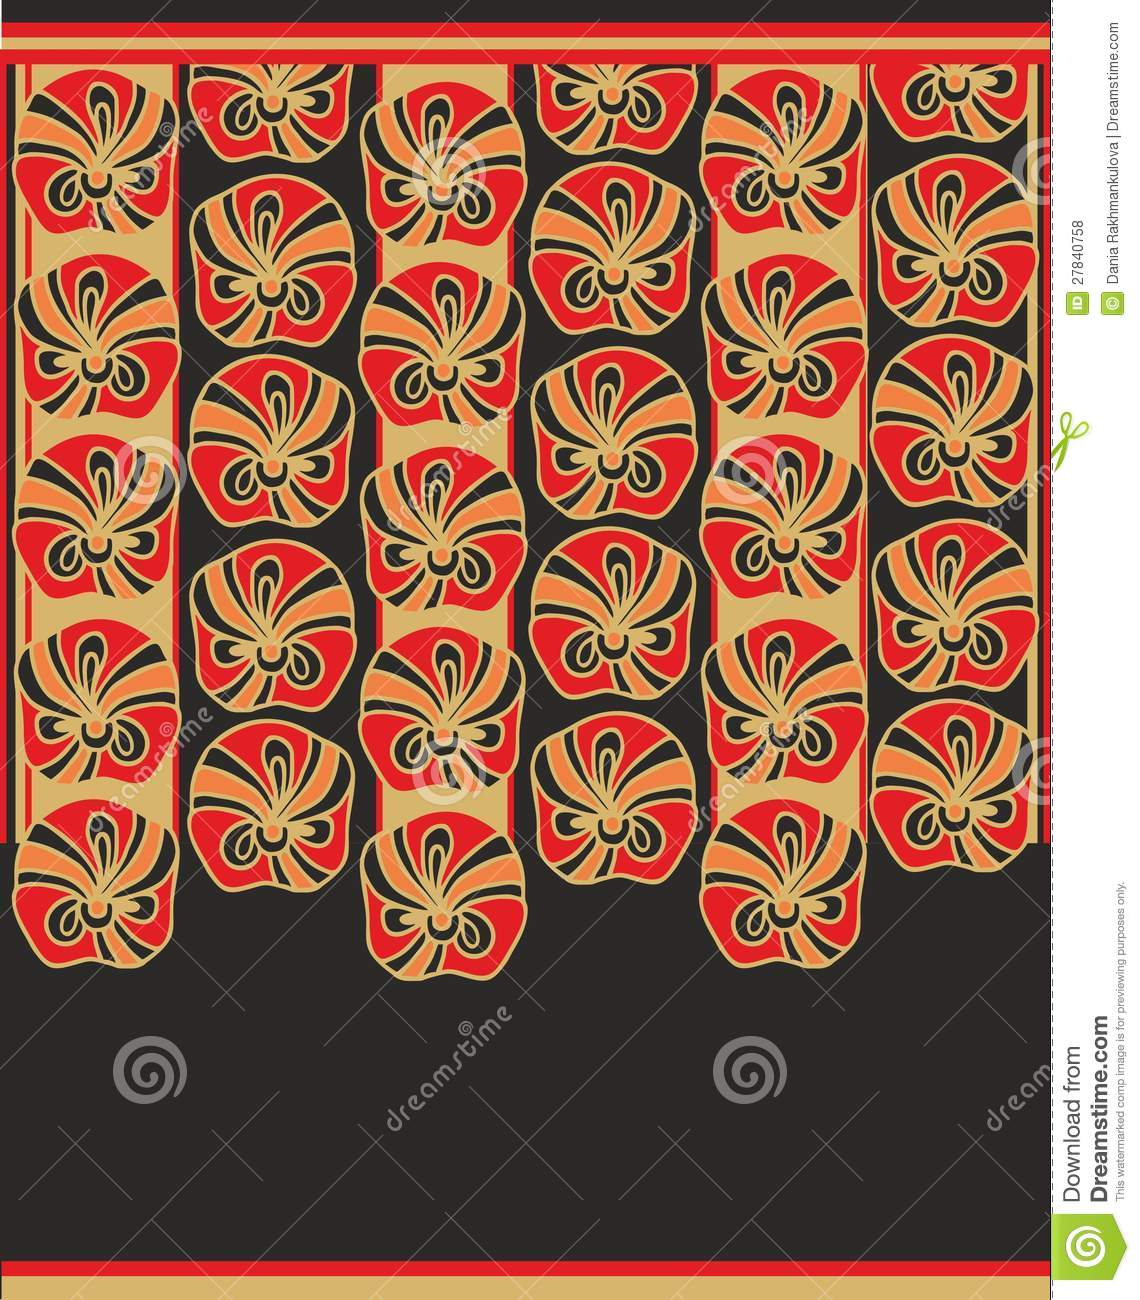 Japanese Decorative Seamless Border Design Stock